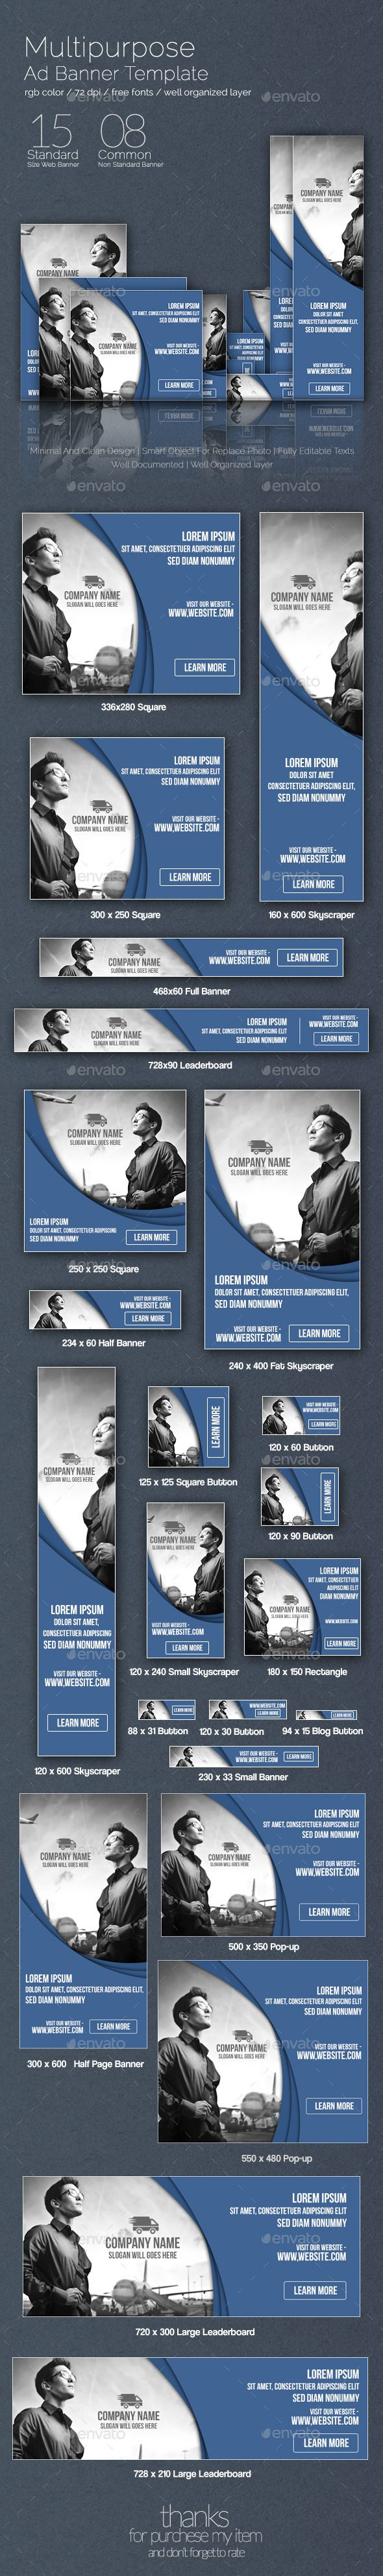 Multipurpose Web Banner Template PSD | Buy and Download: http://graphicriver.net/item/multipurpose-web-banner/8878826?WT.ac=category_thumb&WT.z_author=nazmul57&ref=ksioks